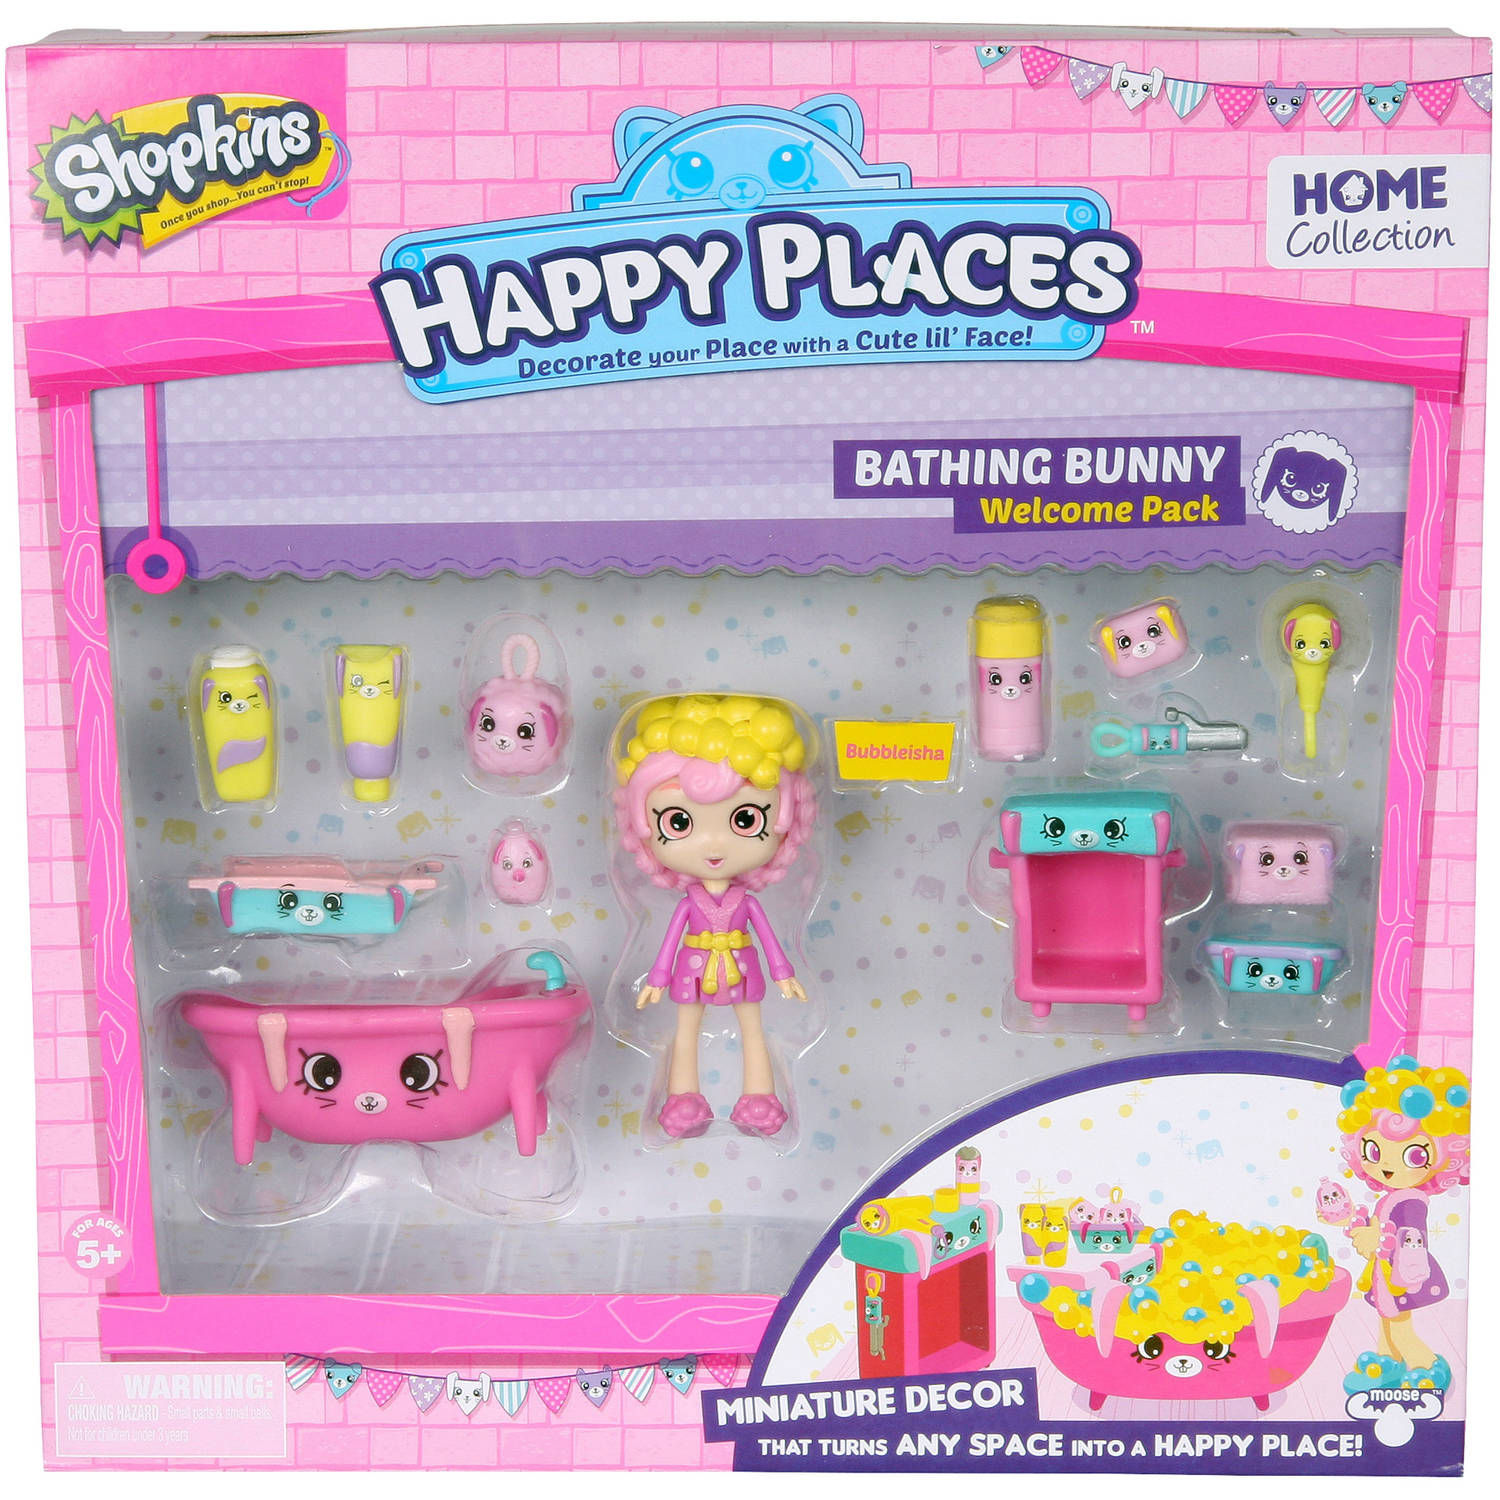 Shopkins Happy Places Welcome Pack, Bunny Bathroom